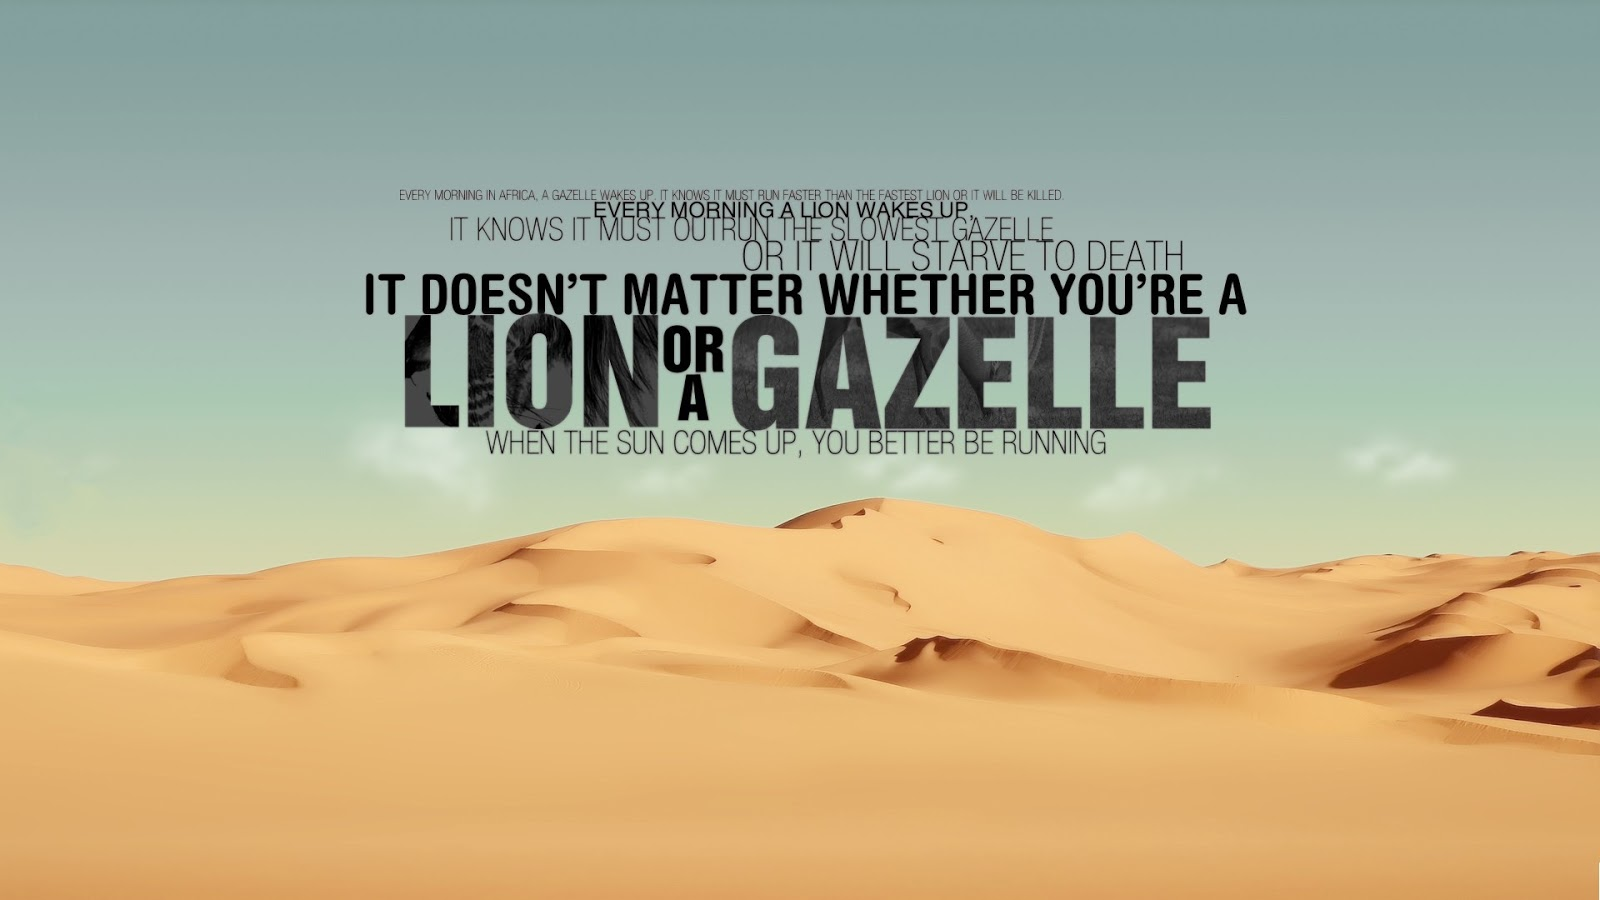 Beautiful Wallpapers With Quotes Of Life - Lion Or A Gazelle - HD Wallpaper